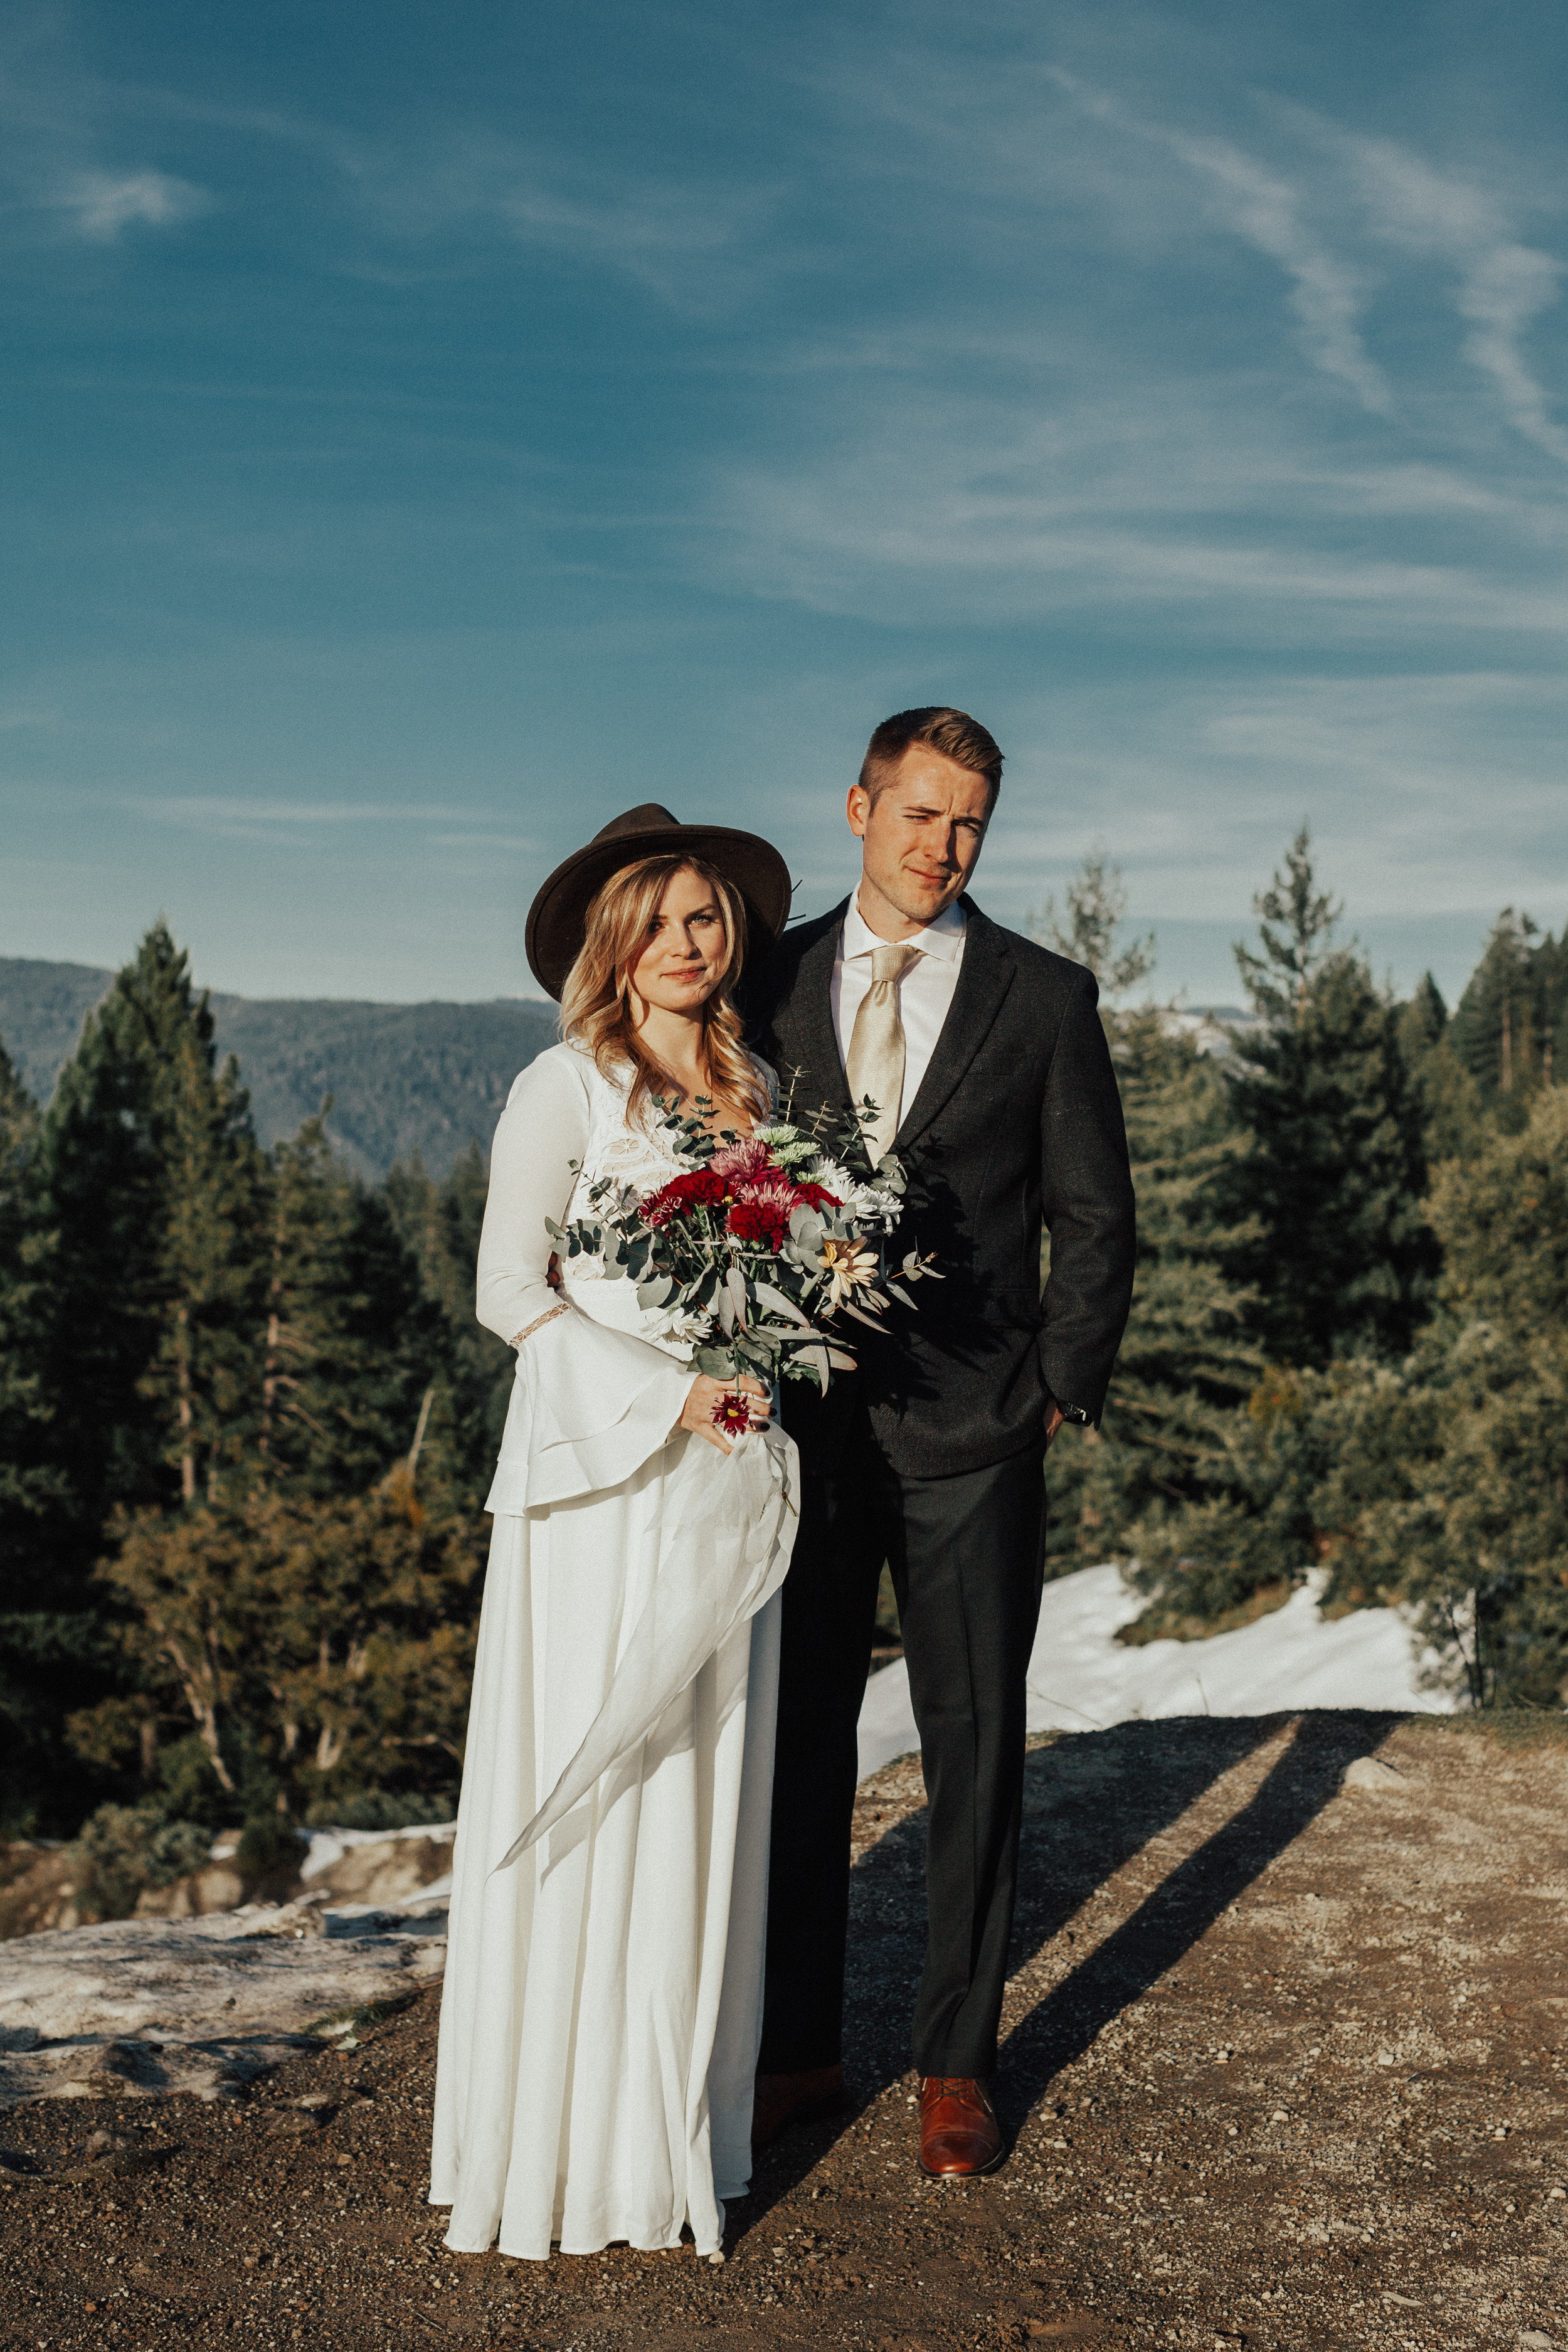 Formal bride and groom portrait. Adventurous couple in the nevada city mountains.